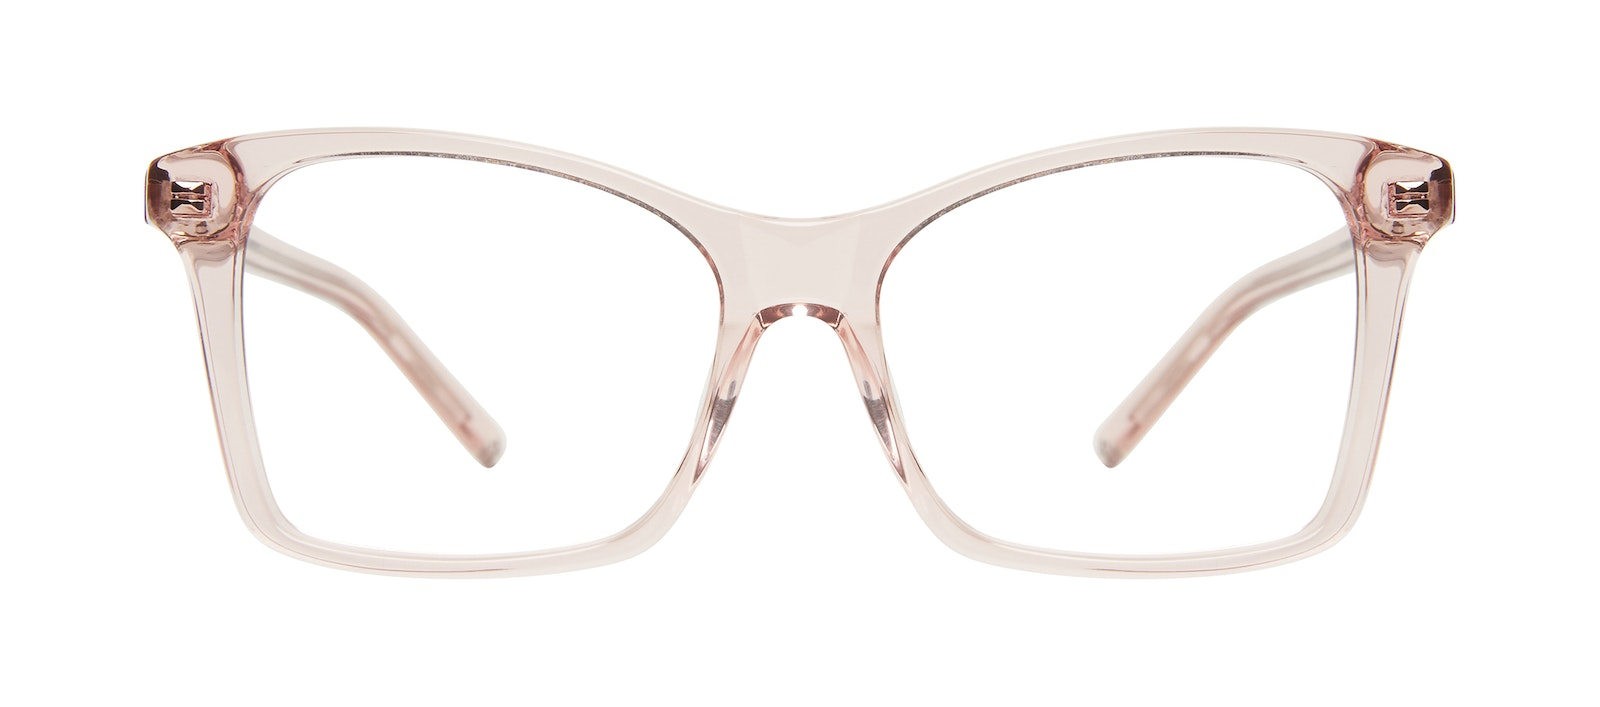 Affordable Fashion Glasses Square Eyeglasses Women Cadence Pink Front